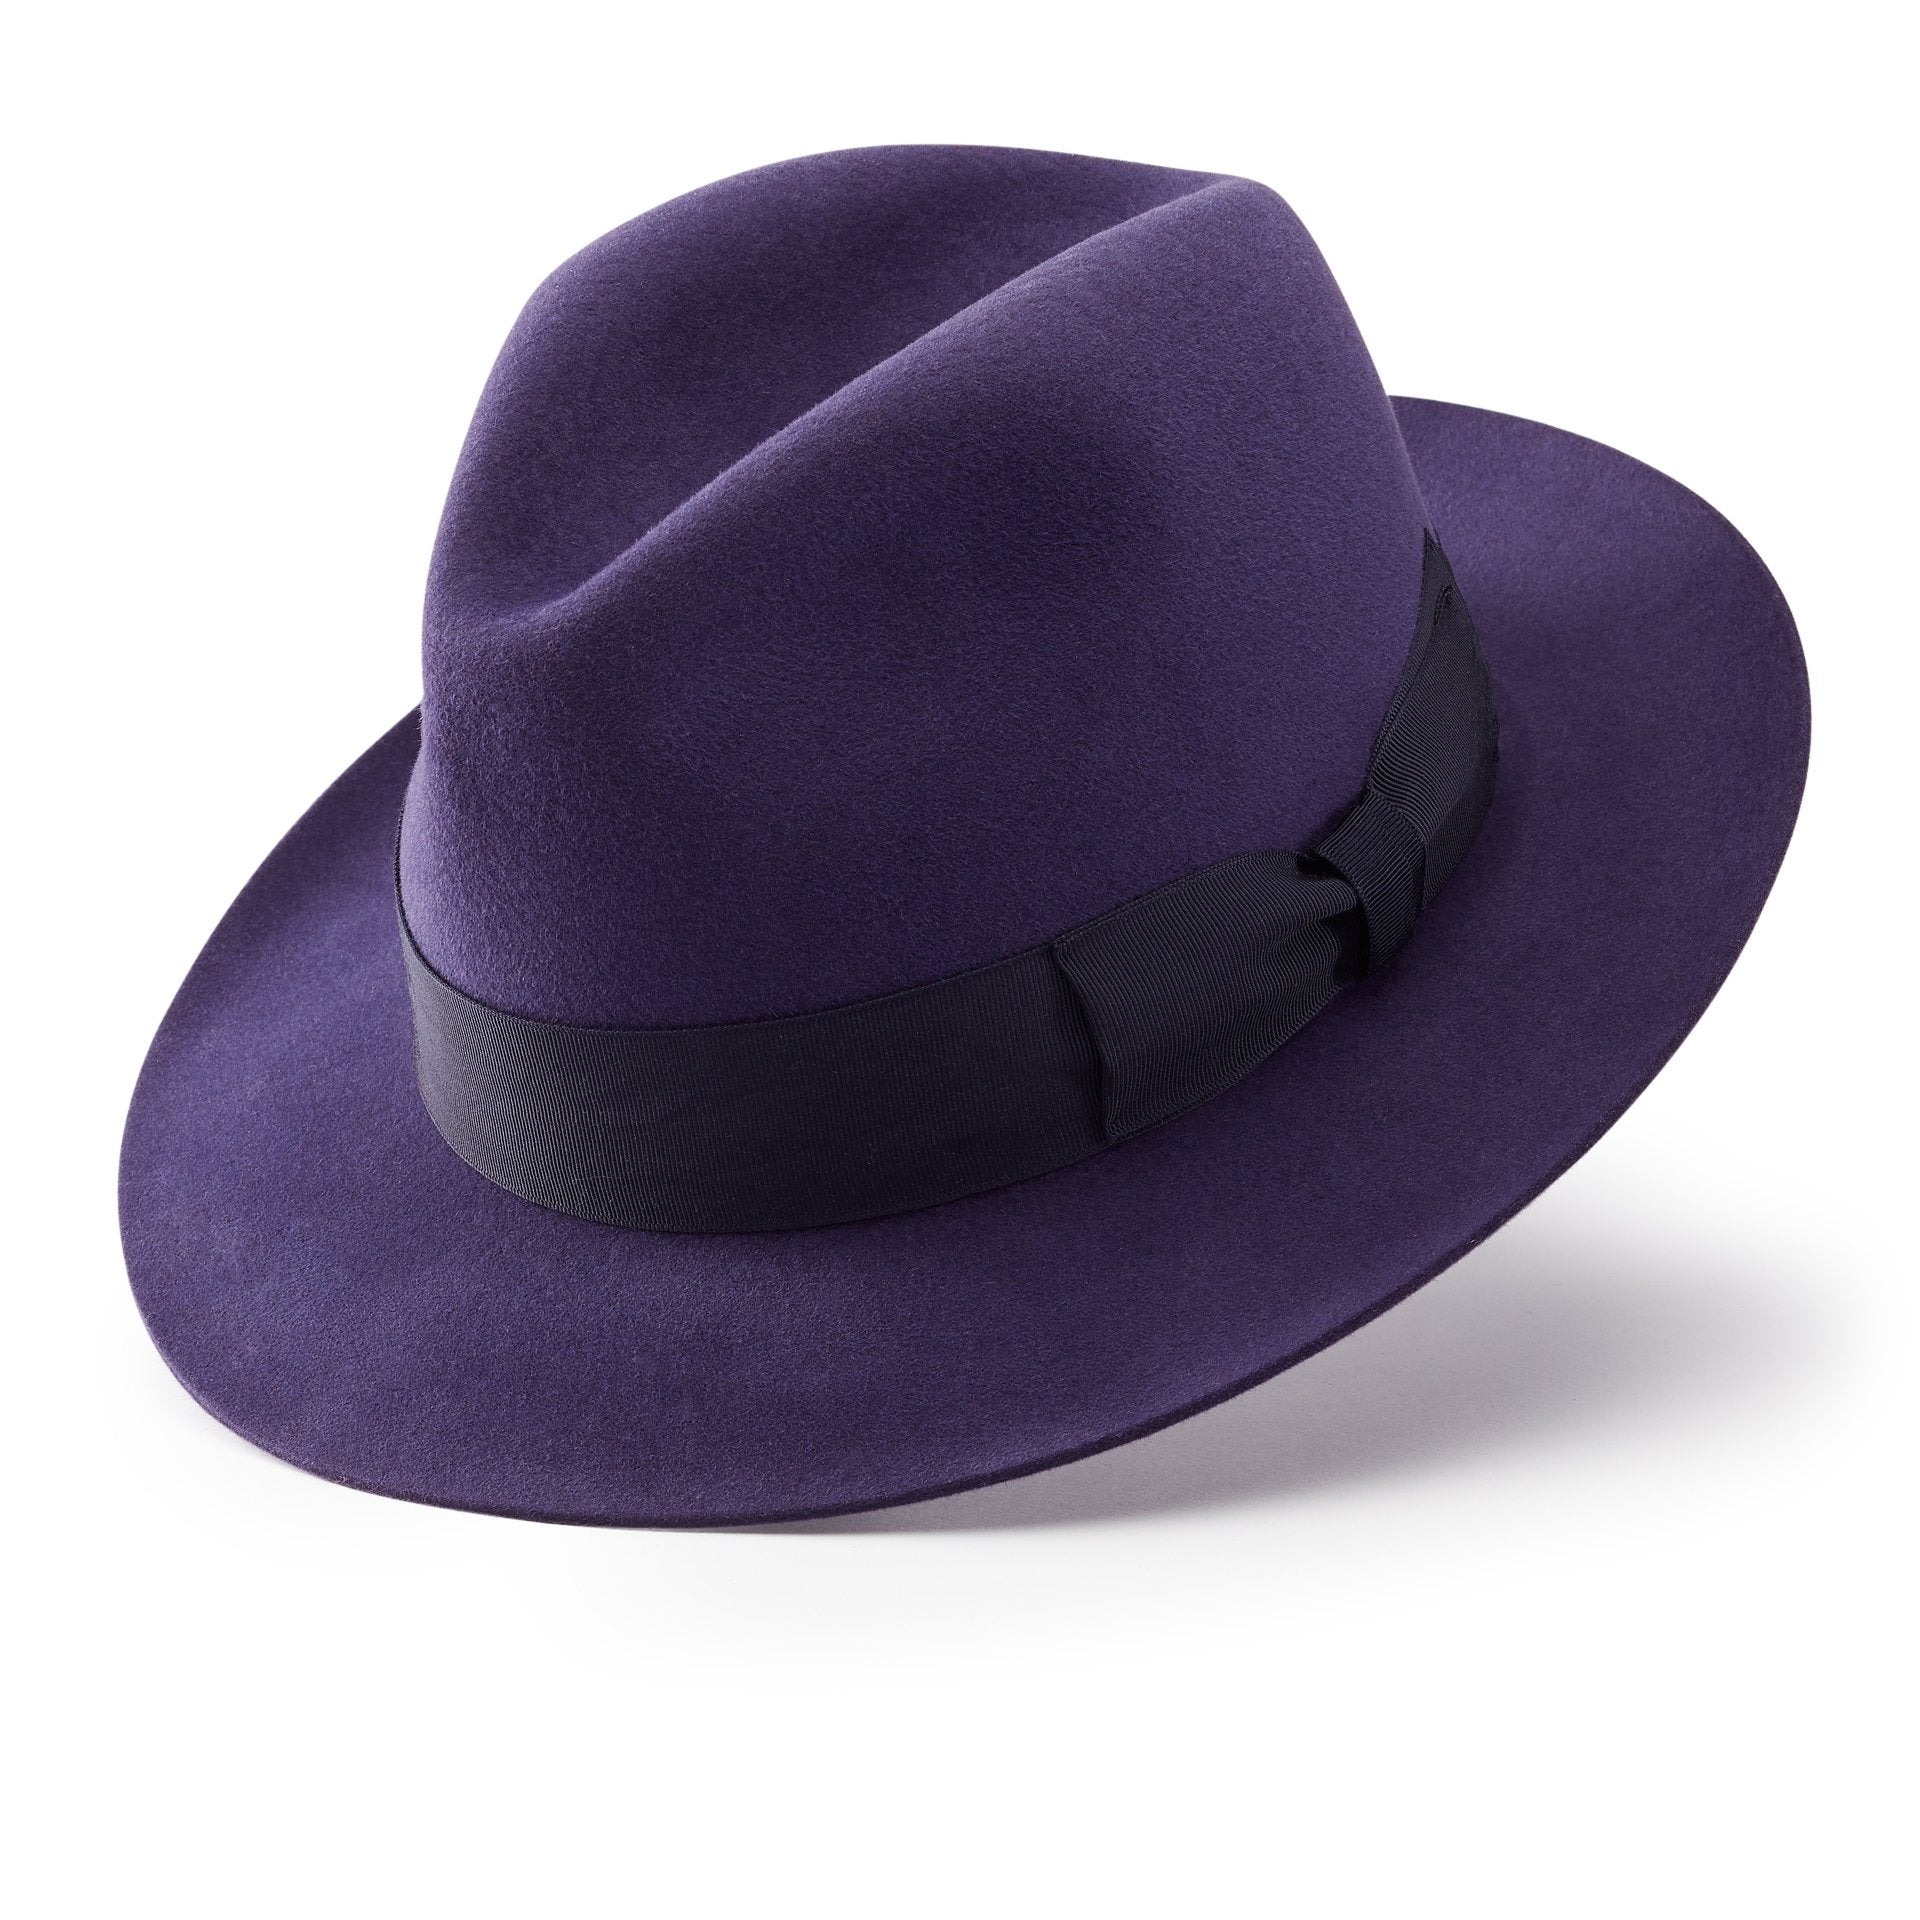 Wells fedora - Fedoras & homburgs - Lock & Co. Hatters London UK